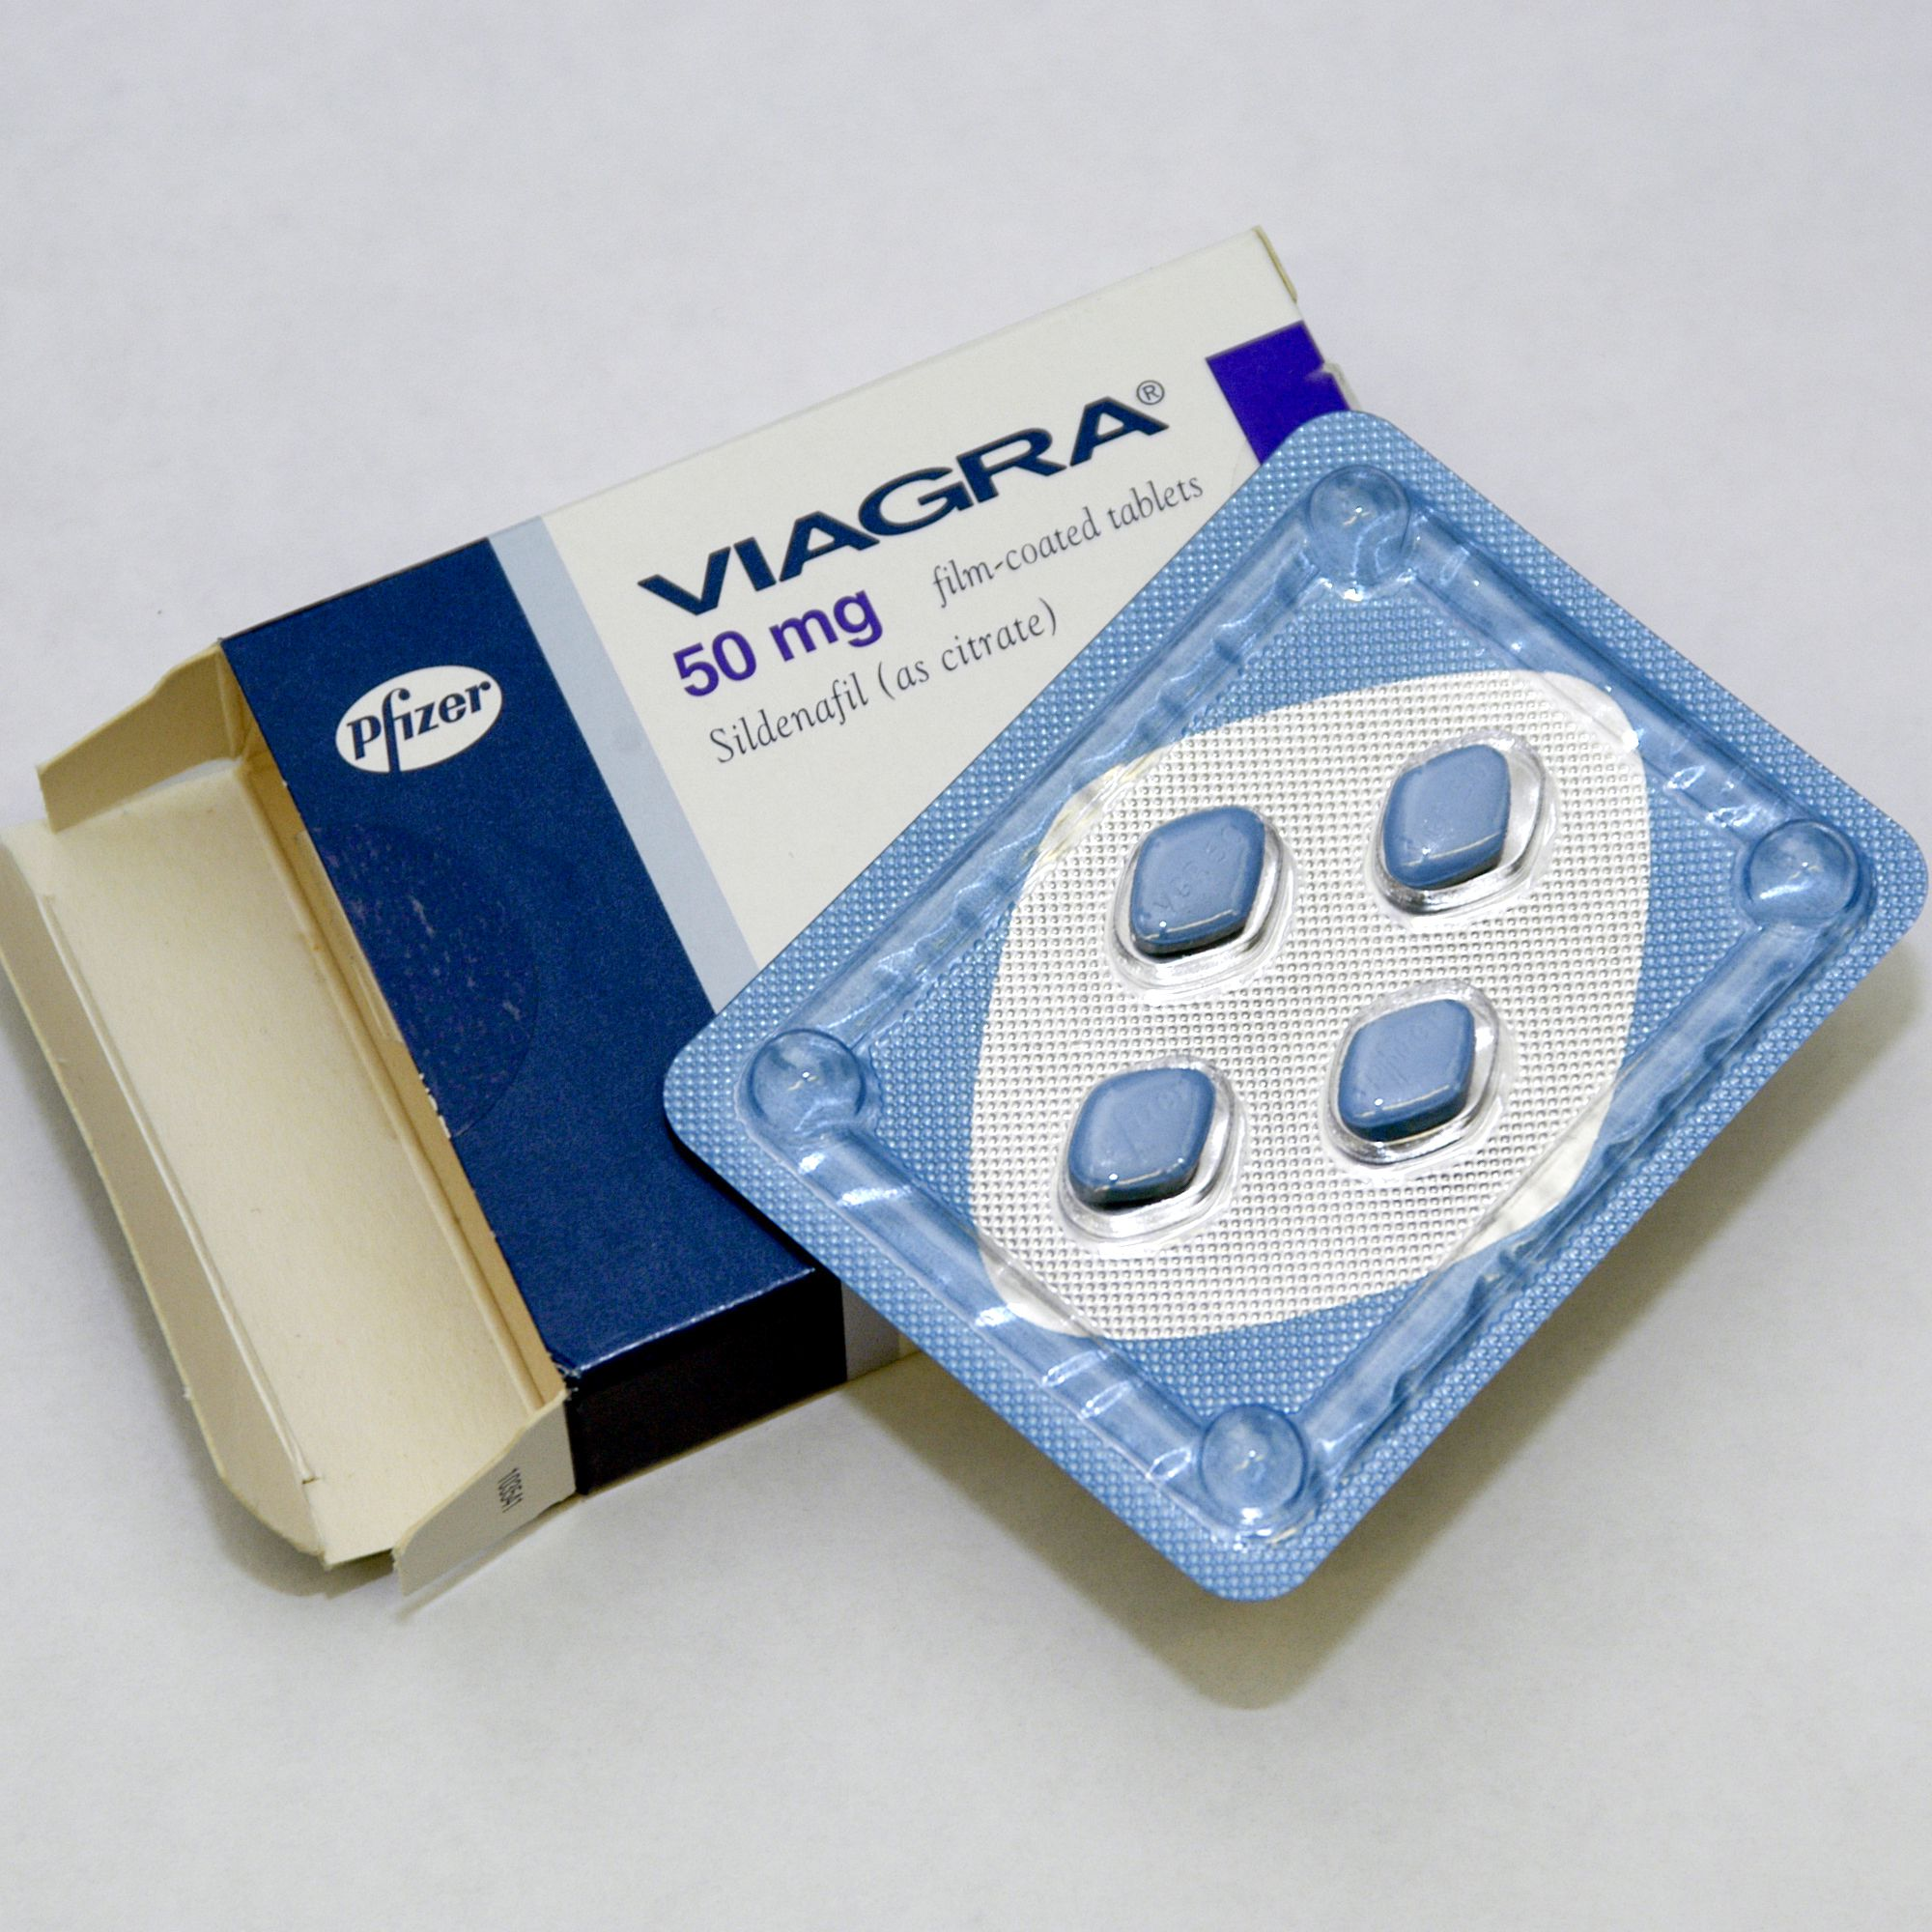 Viagra's Team of Inventors and History